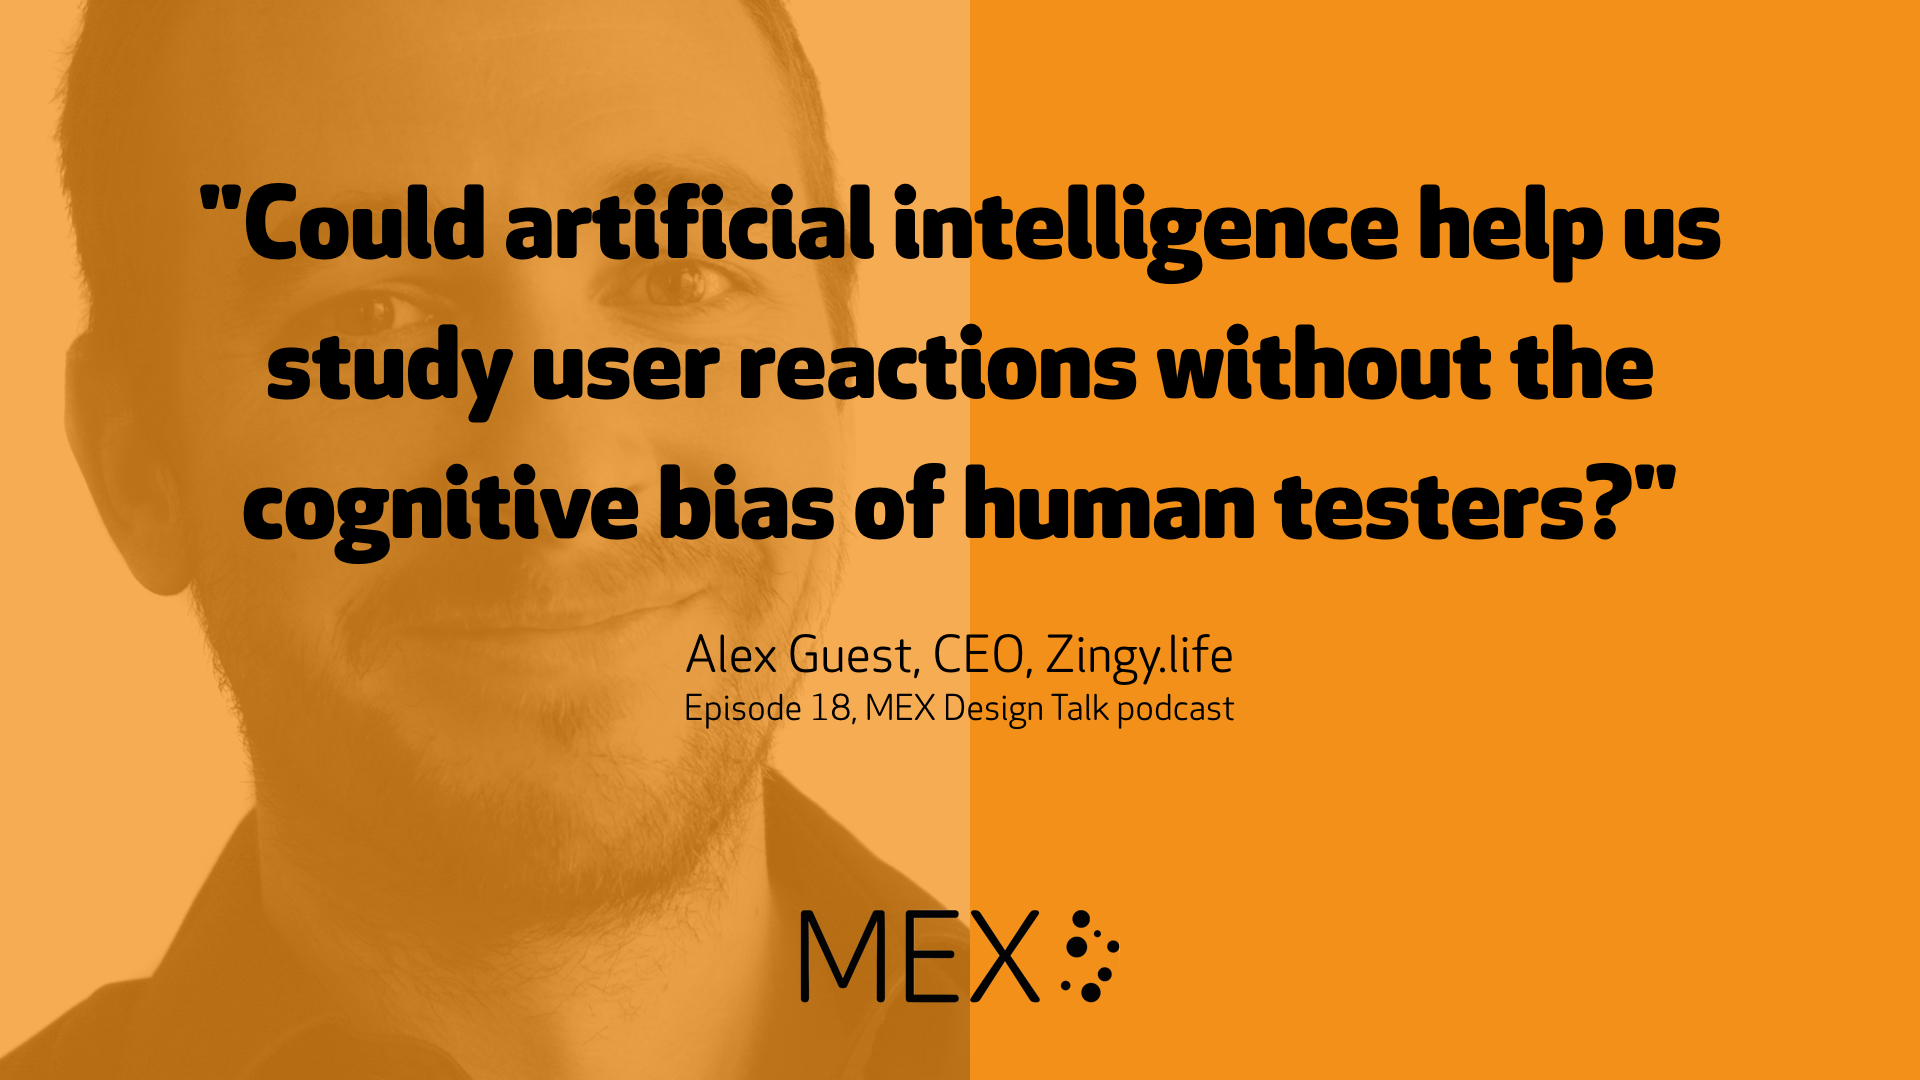 """Could artificial intelligence help us study user reactions without the cognitive bias of human testers?"" -- Alex Guest, CEO, Zingy.life, Episode 18, MEX Design Talk podcast"